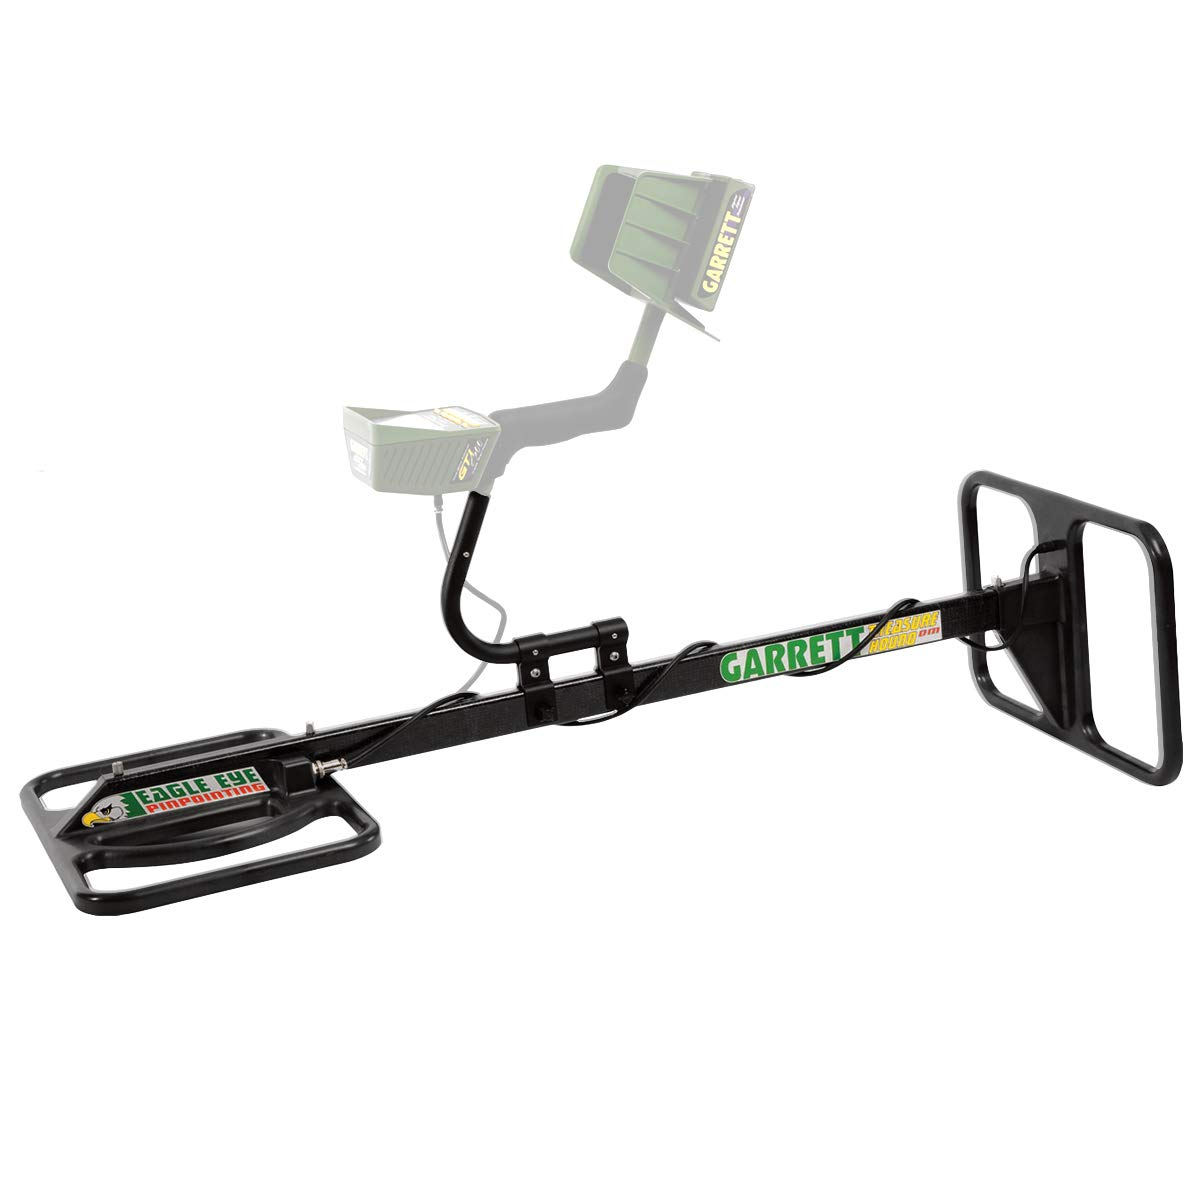 Eagleeye Pinpointing for GTI 2500 Metal Detector - Accessory Only